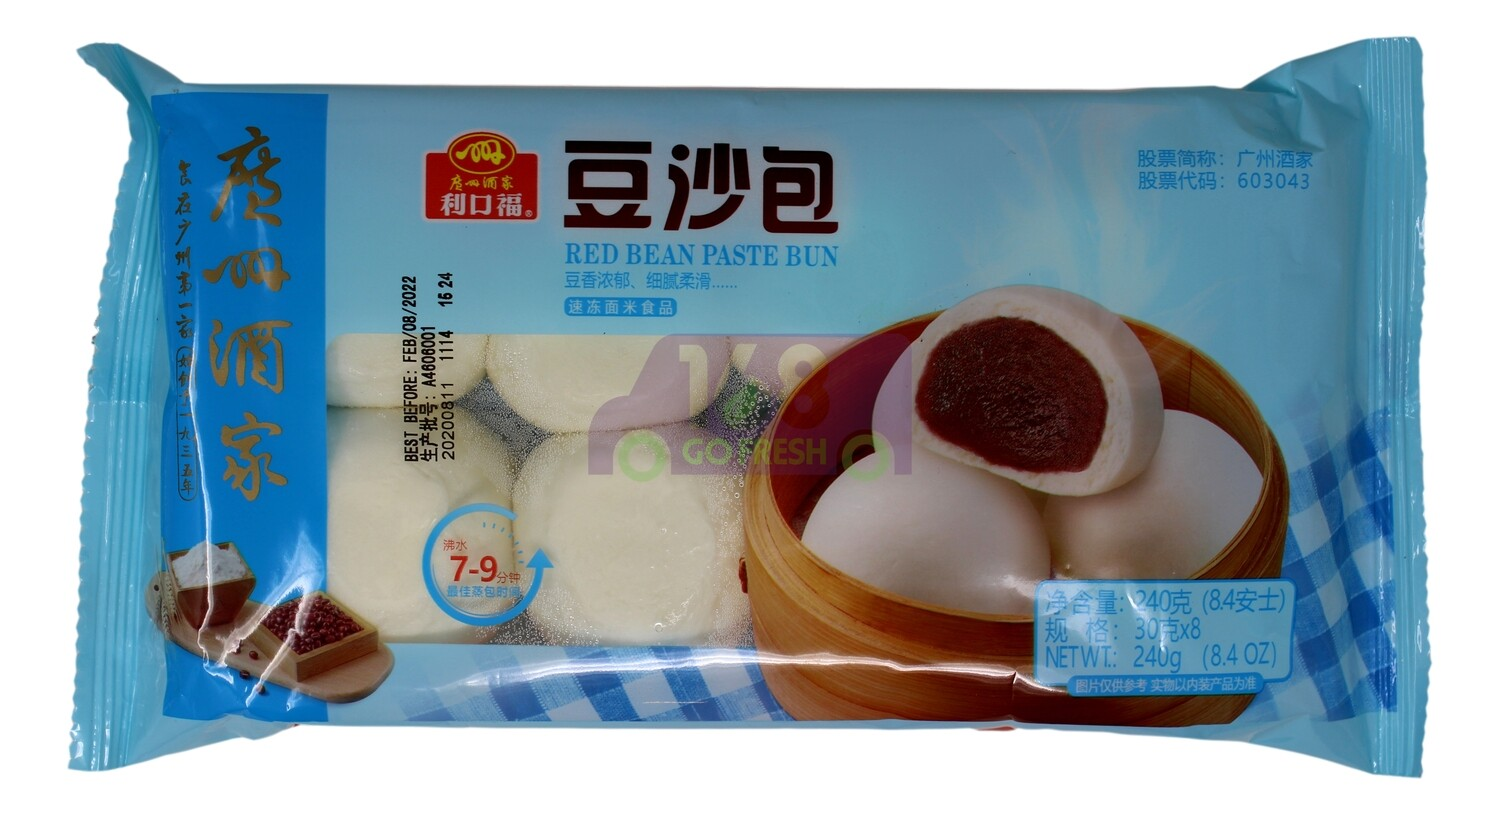 RED BEAN PASTE BUN 广州酒家 利口福 豆沙包(8.4OZ)